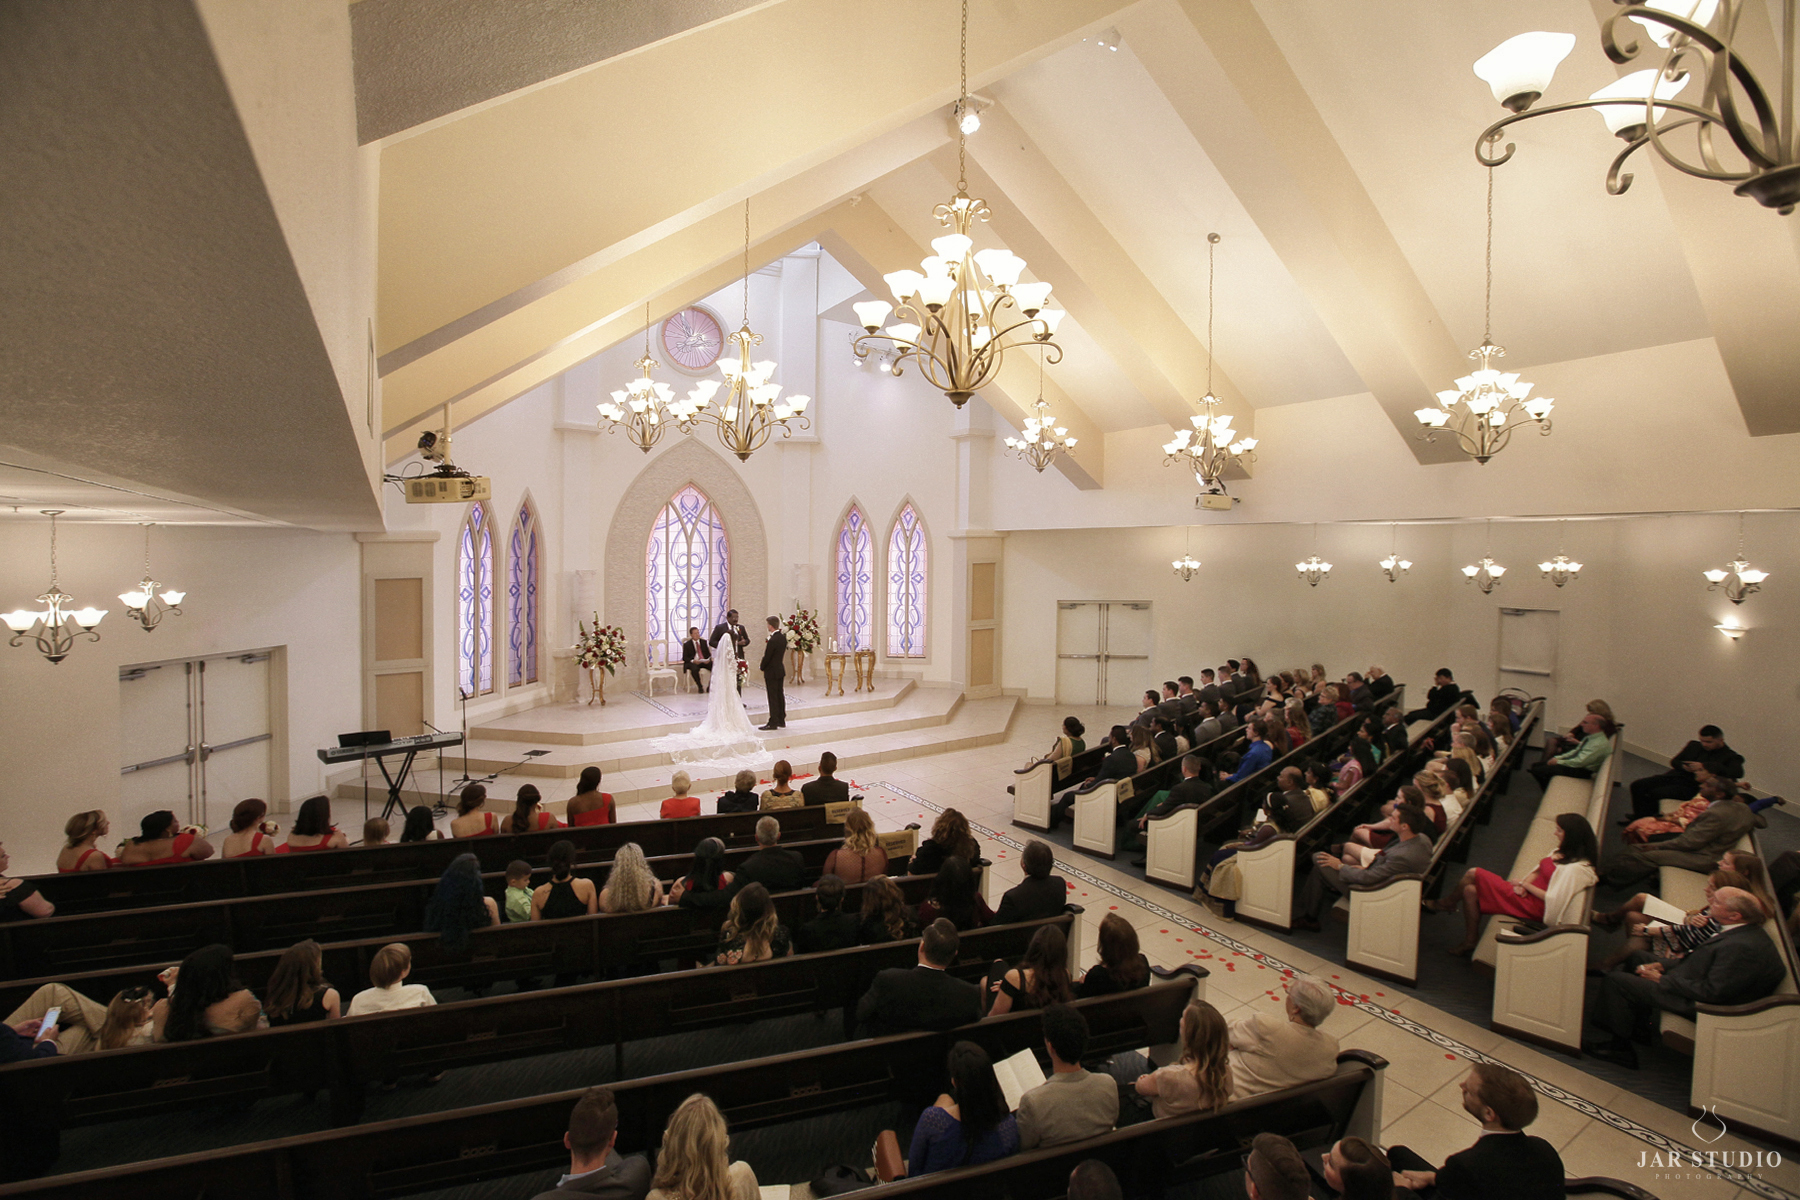 14-central-florida-elegant-wedding-chapel-jarstudio-photographer.JPG